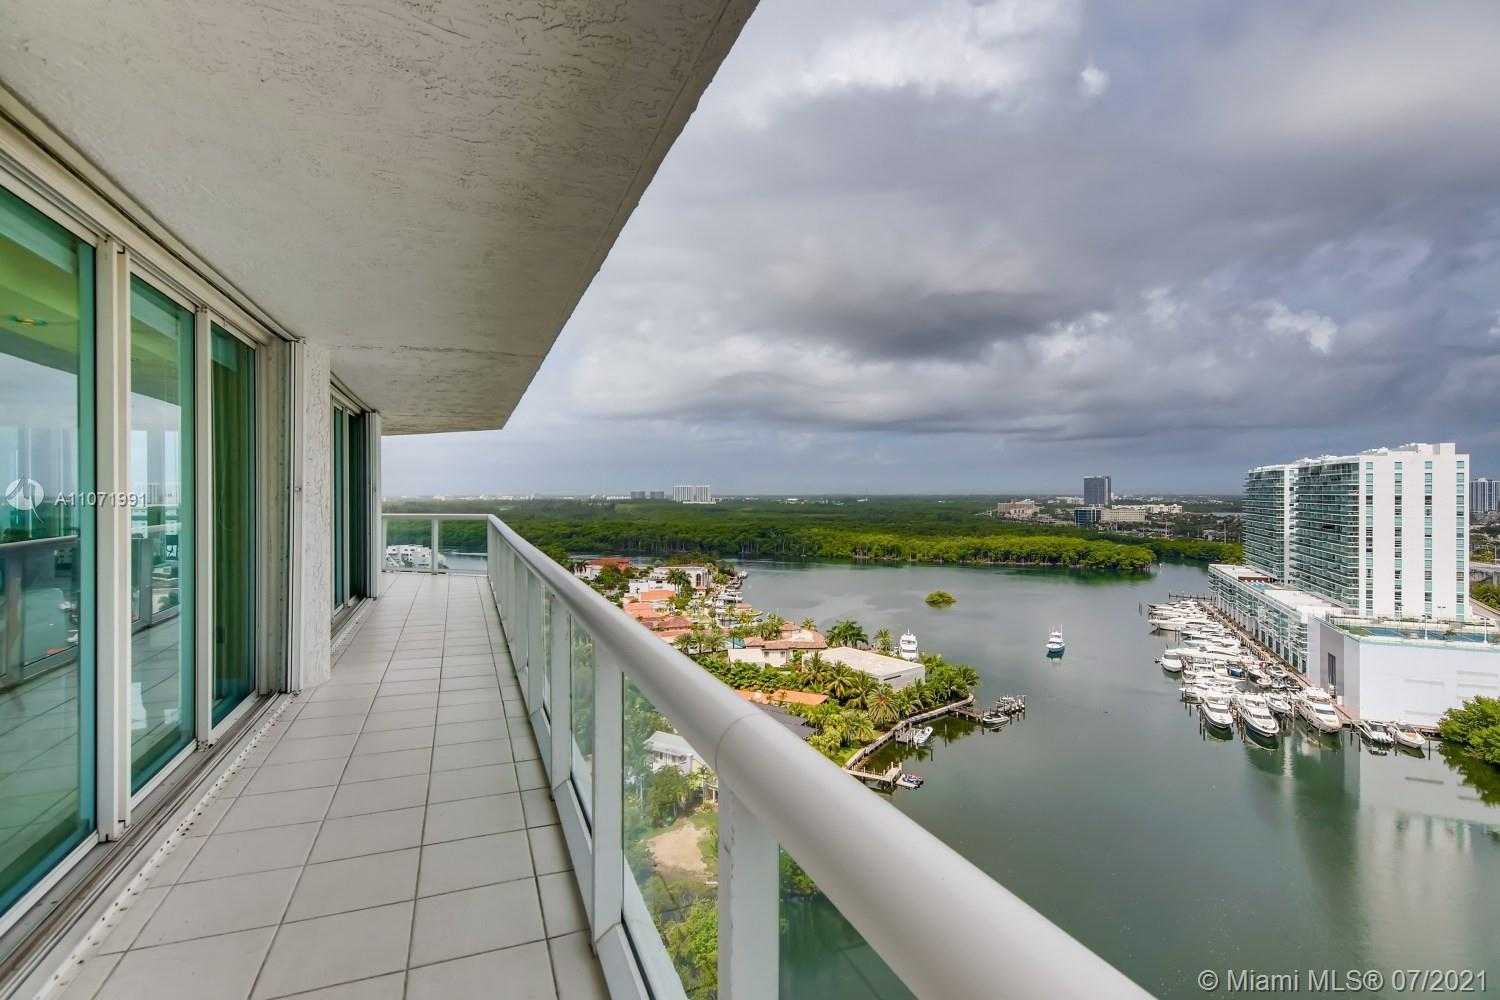 Luxury living with some of the best views in town! The entry, living area, and dining area have marb